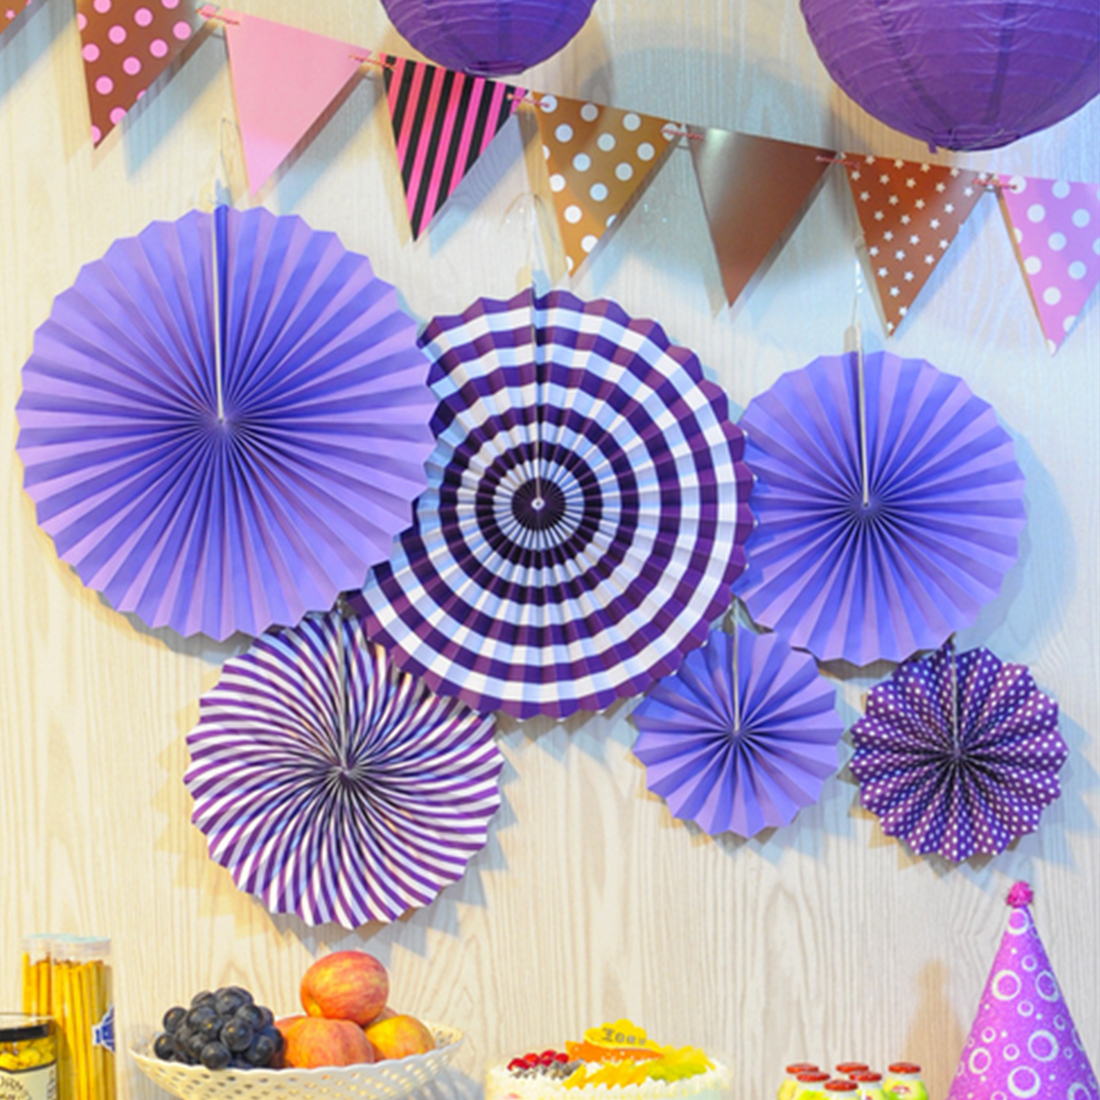 Modern paper fan flowers images images for wedding gown ideas how to make paper fan flowers image collections flower decoration mightylinksfo